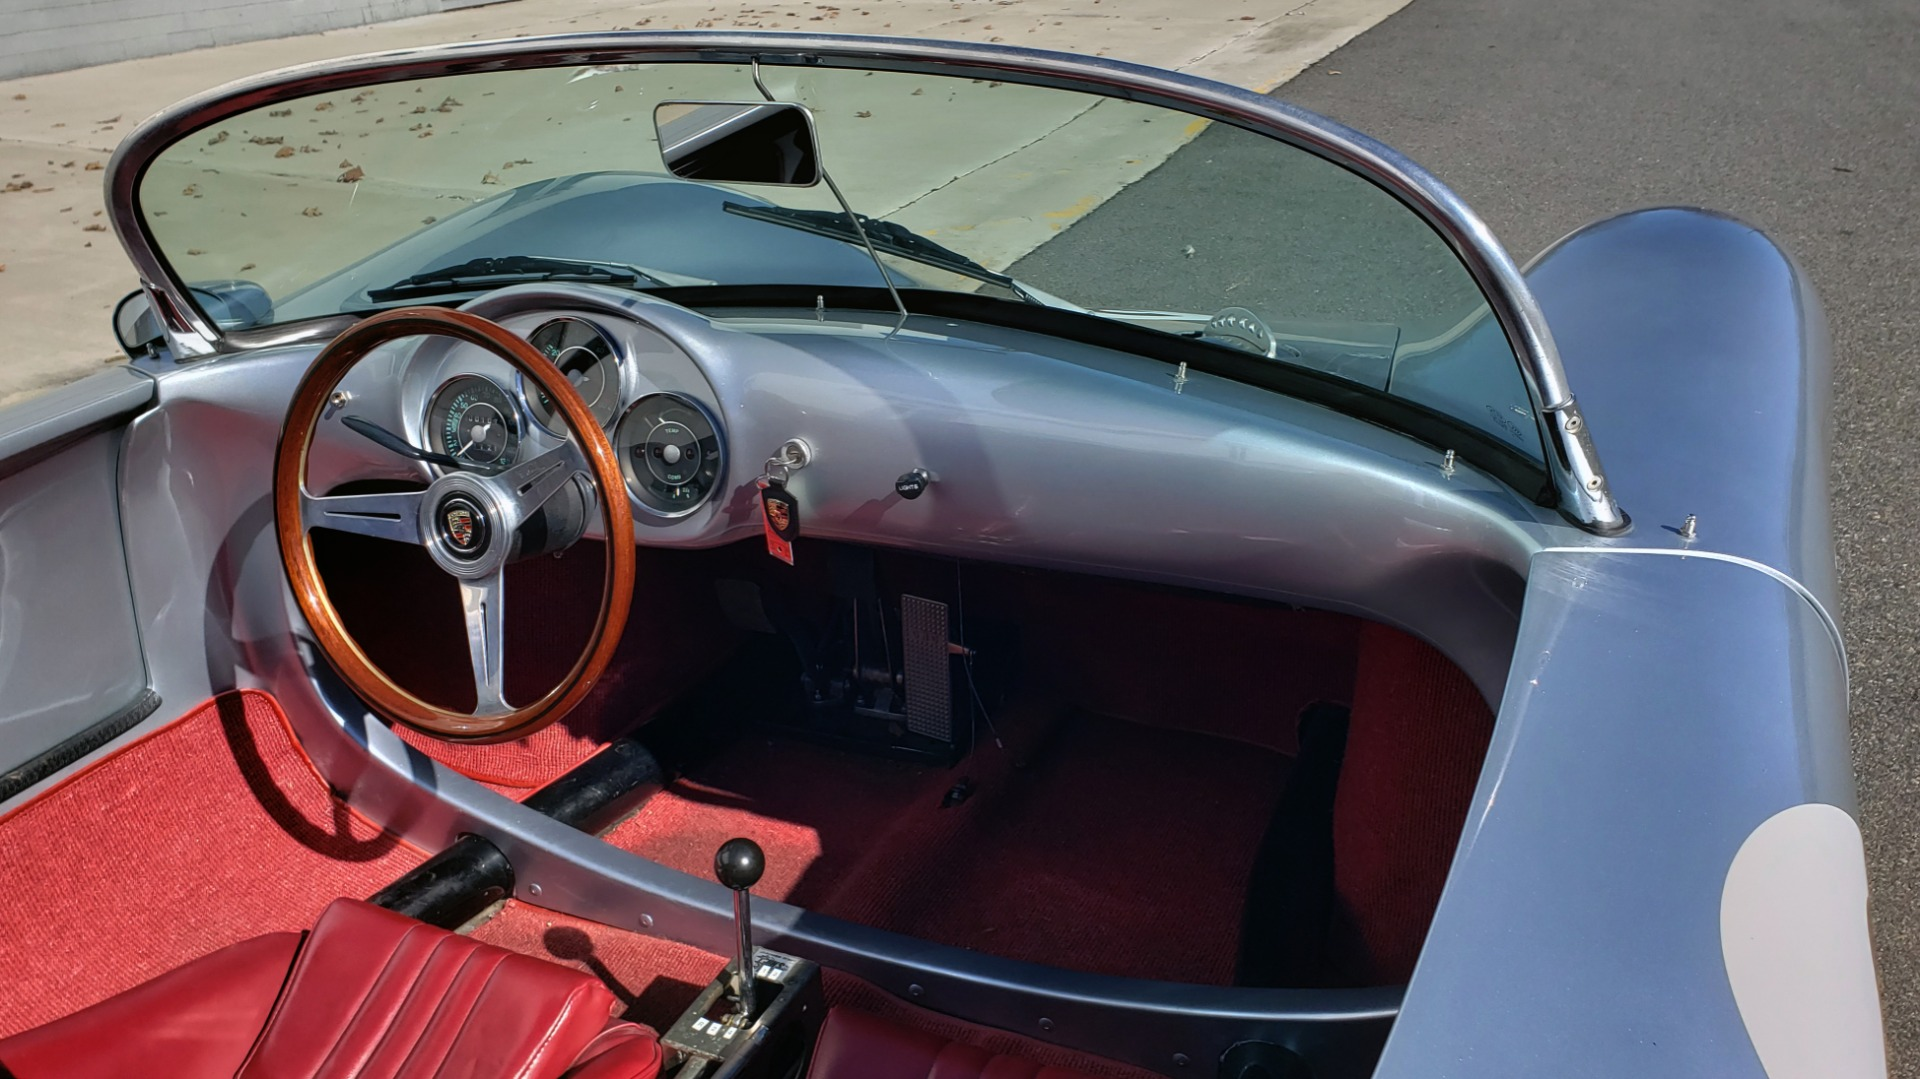 Used 1959 Porsche 718 RSK SPYDER REPLICA / 2275CC W/44MM WEBER (160HP) / 4-SPD MANUAL for sale $39,999 at Formula Imports in Charlotte NC 28227 14